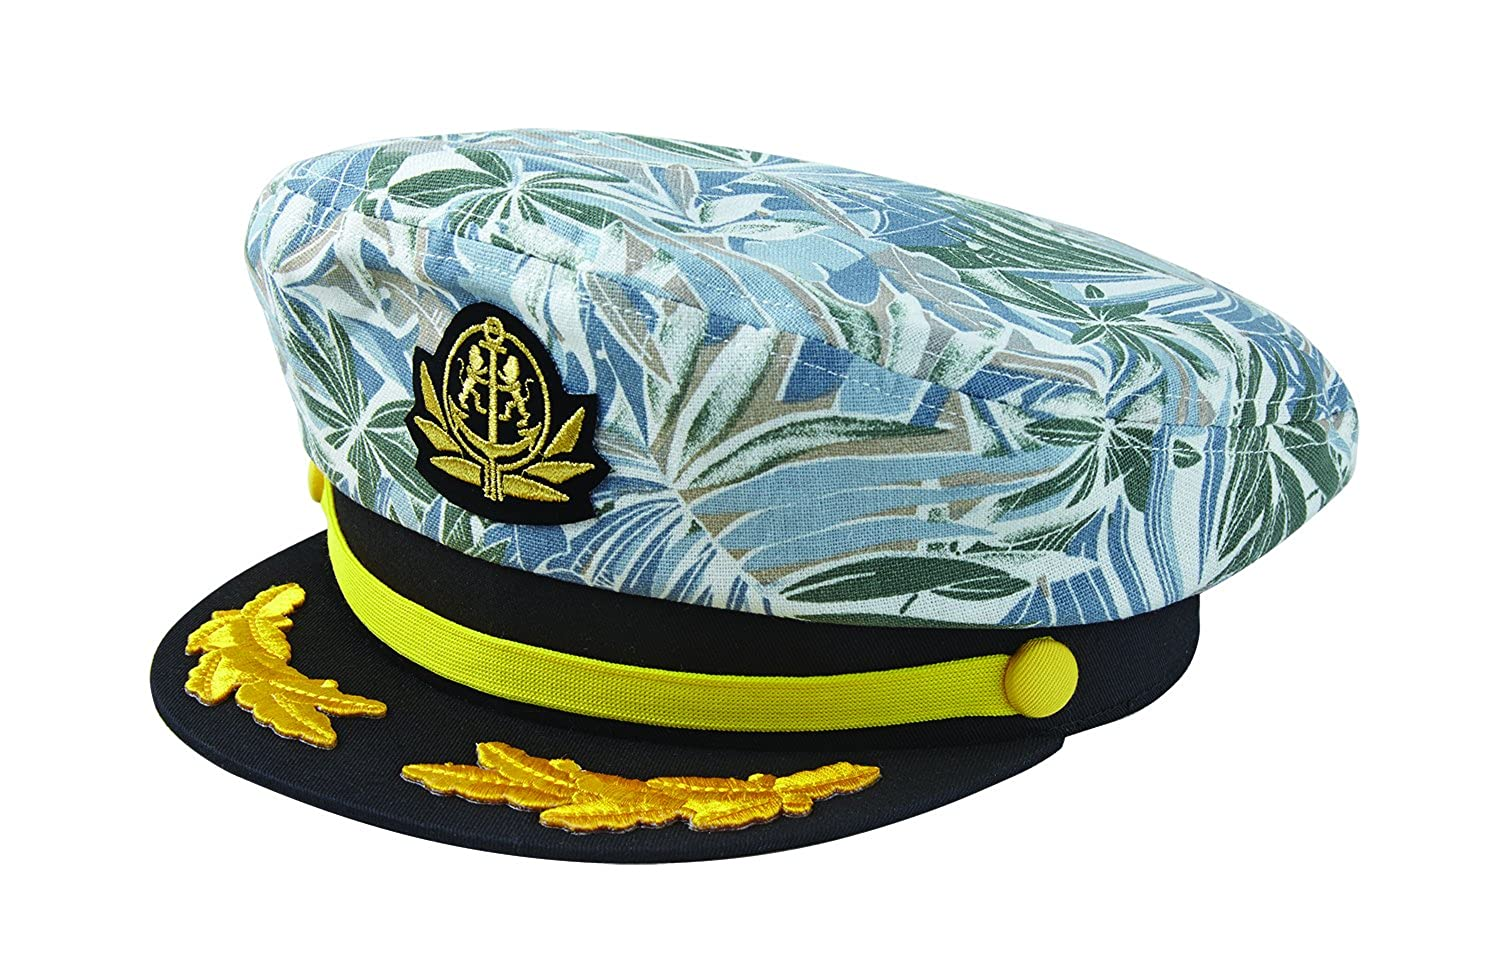 Broner Yacht Rock Patterned Print Yacht Cap